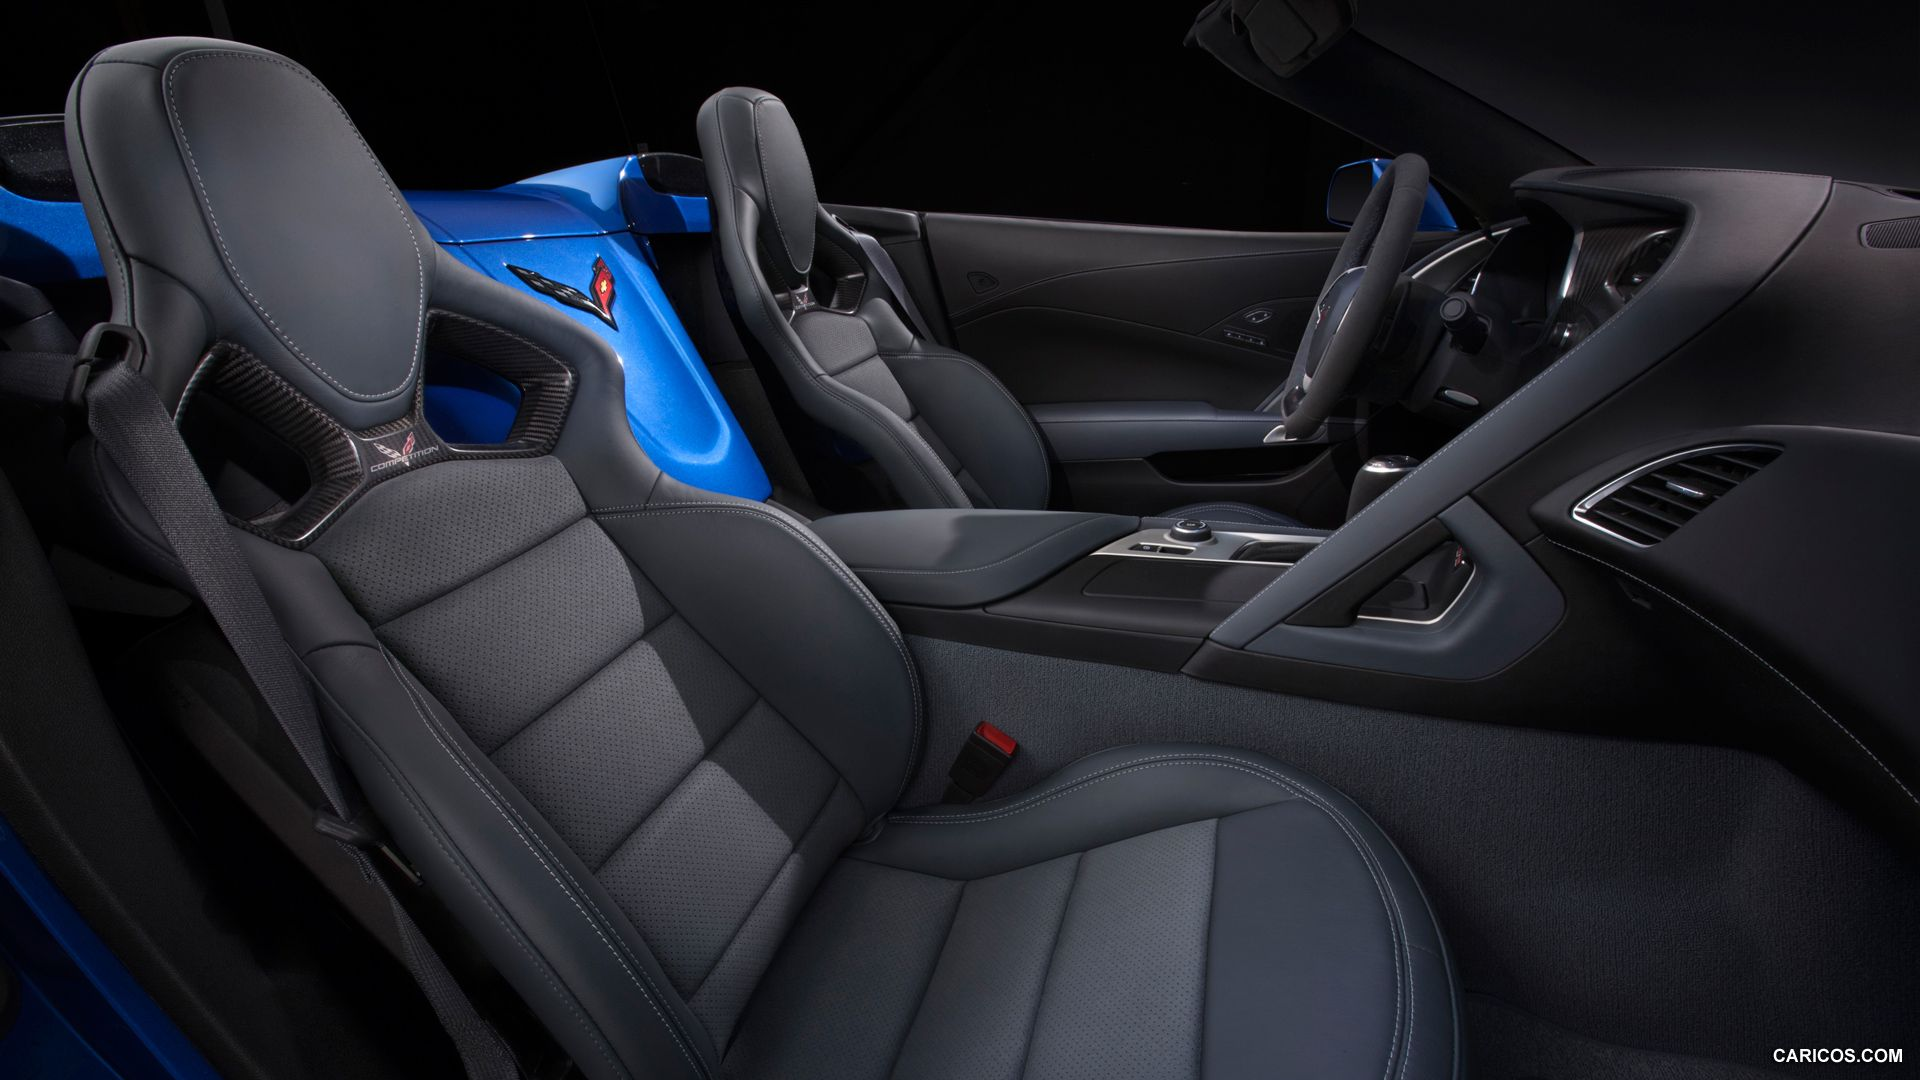 Incredible 2015 Chevrolet Corvette Z06 Convertible Interior Wallpaper Ocoug Best Dining Table And Chair Ideas Images Ocougorg